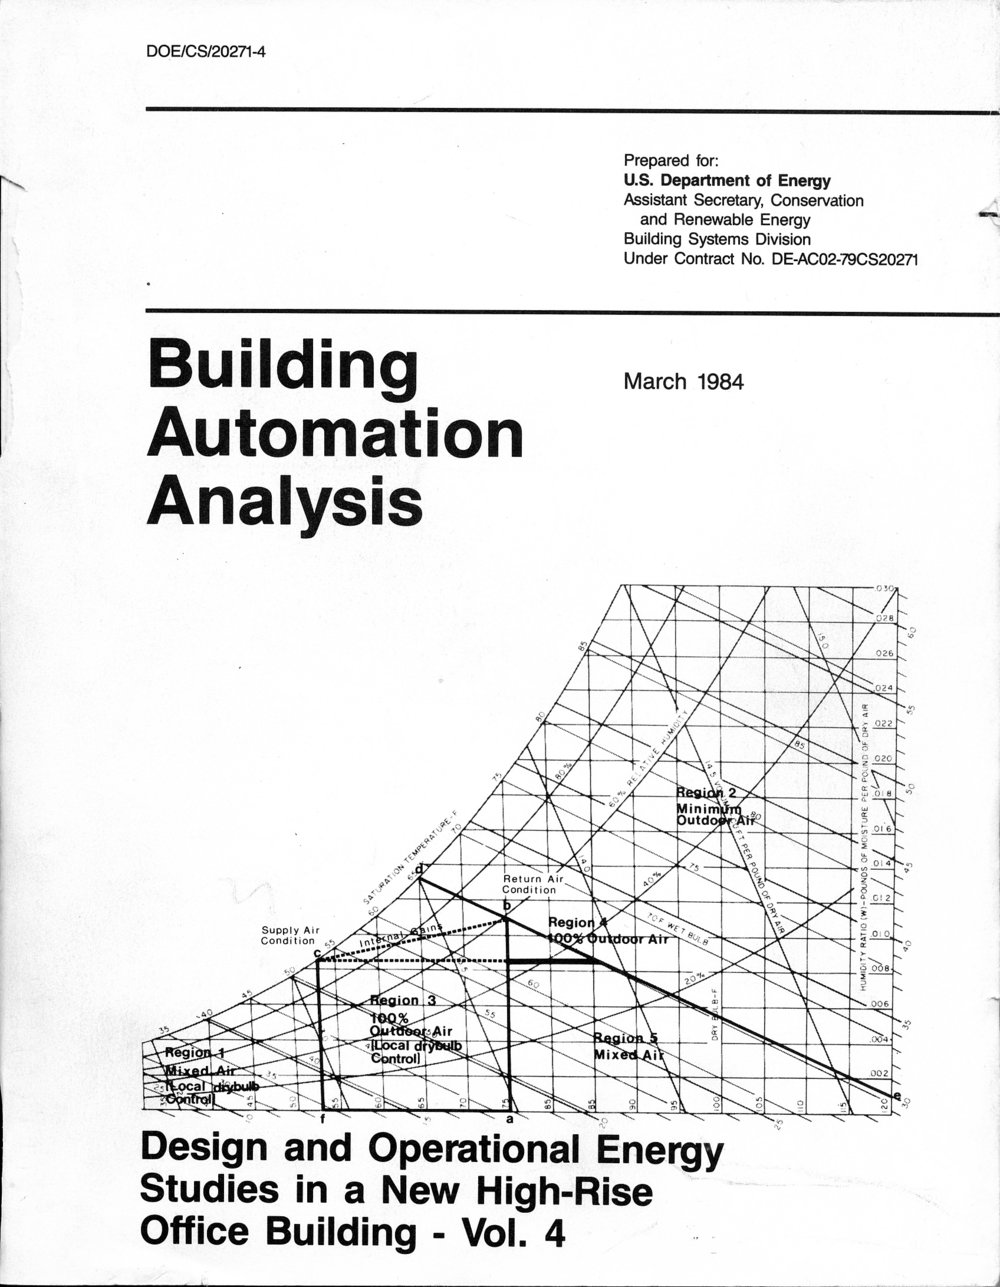 PSE&G Building Energy Studies (USDOE) - Analysis of Energy Use During Building Startup